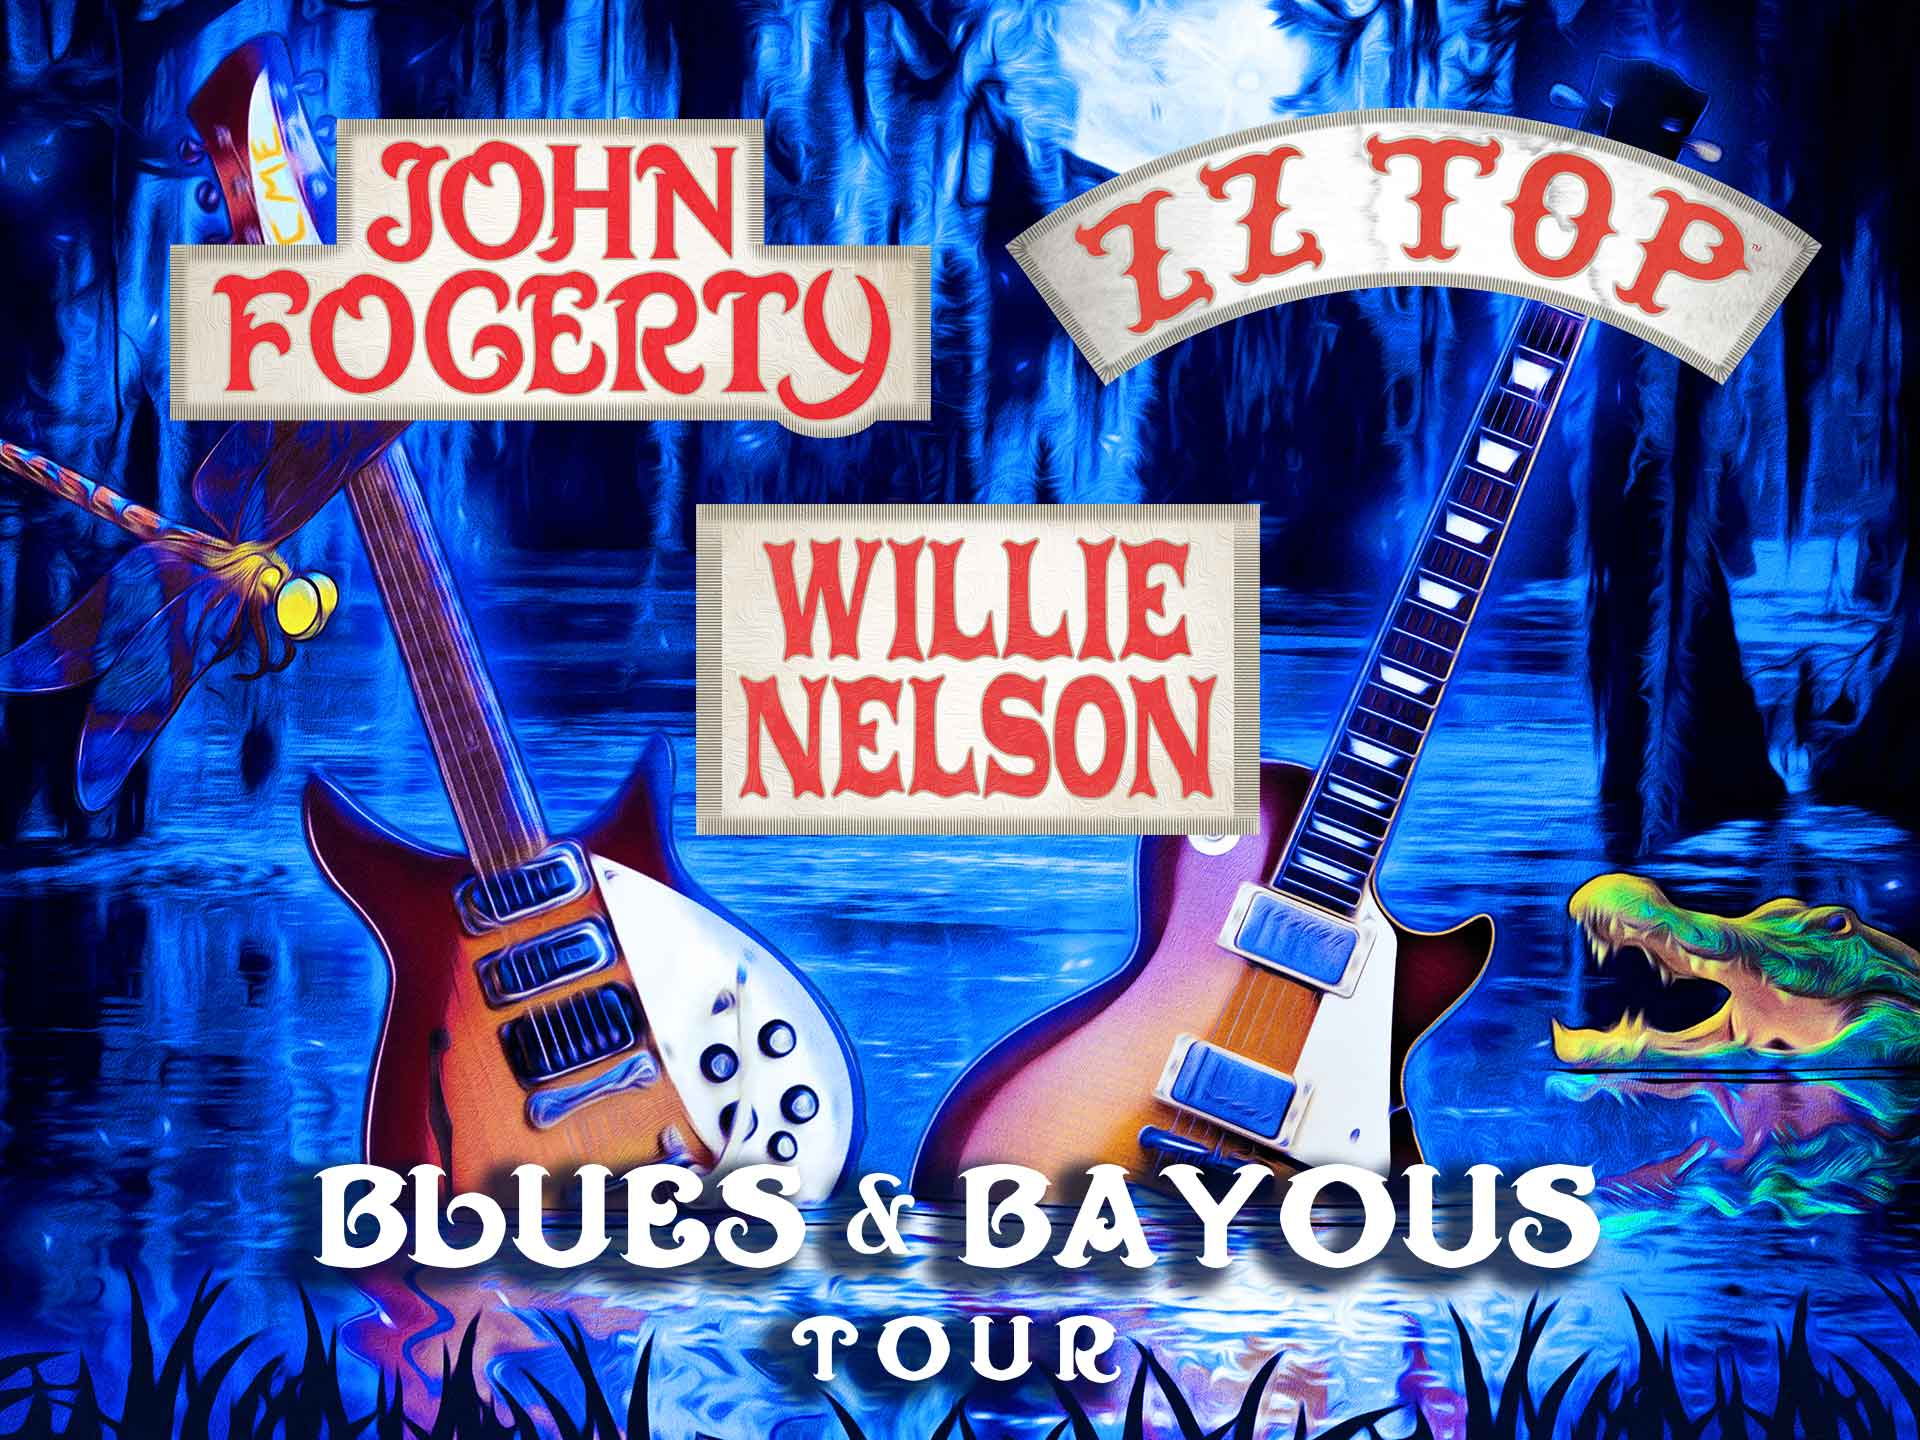 Image for JOHN FOGERTY / ZZ TOP / WILLIE NELSON - Tuesday, June 26, 2018 (OUTDOORS)